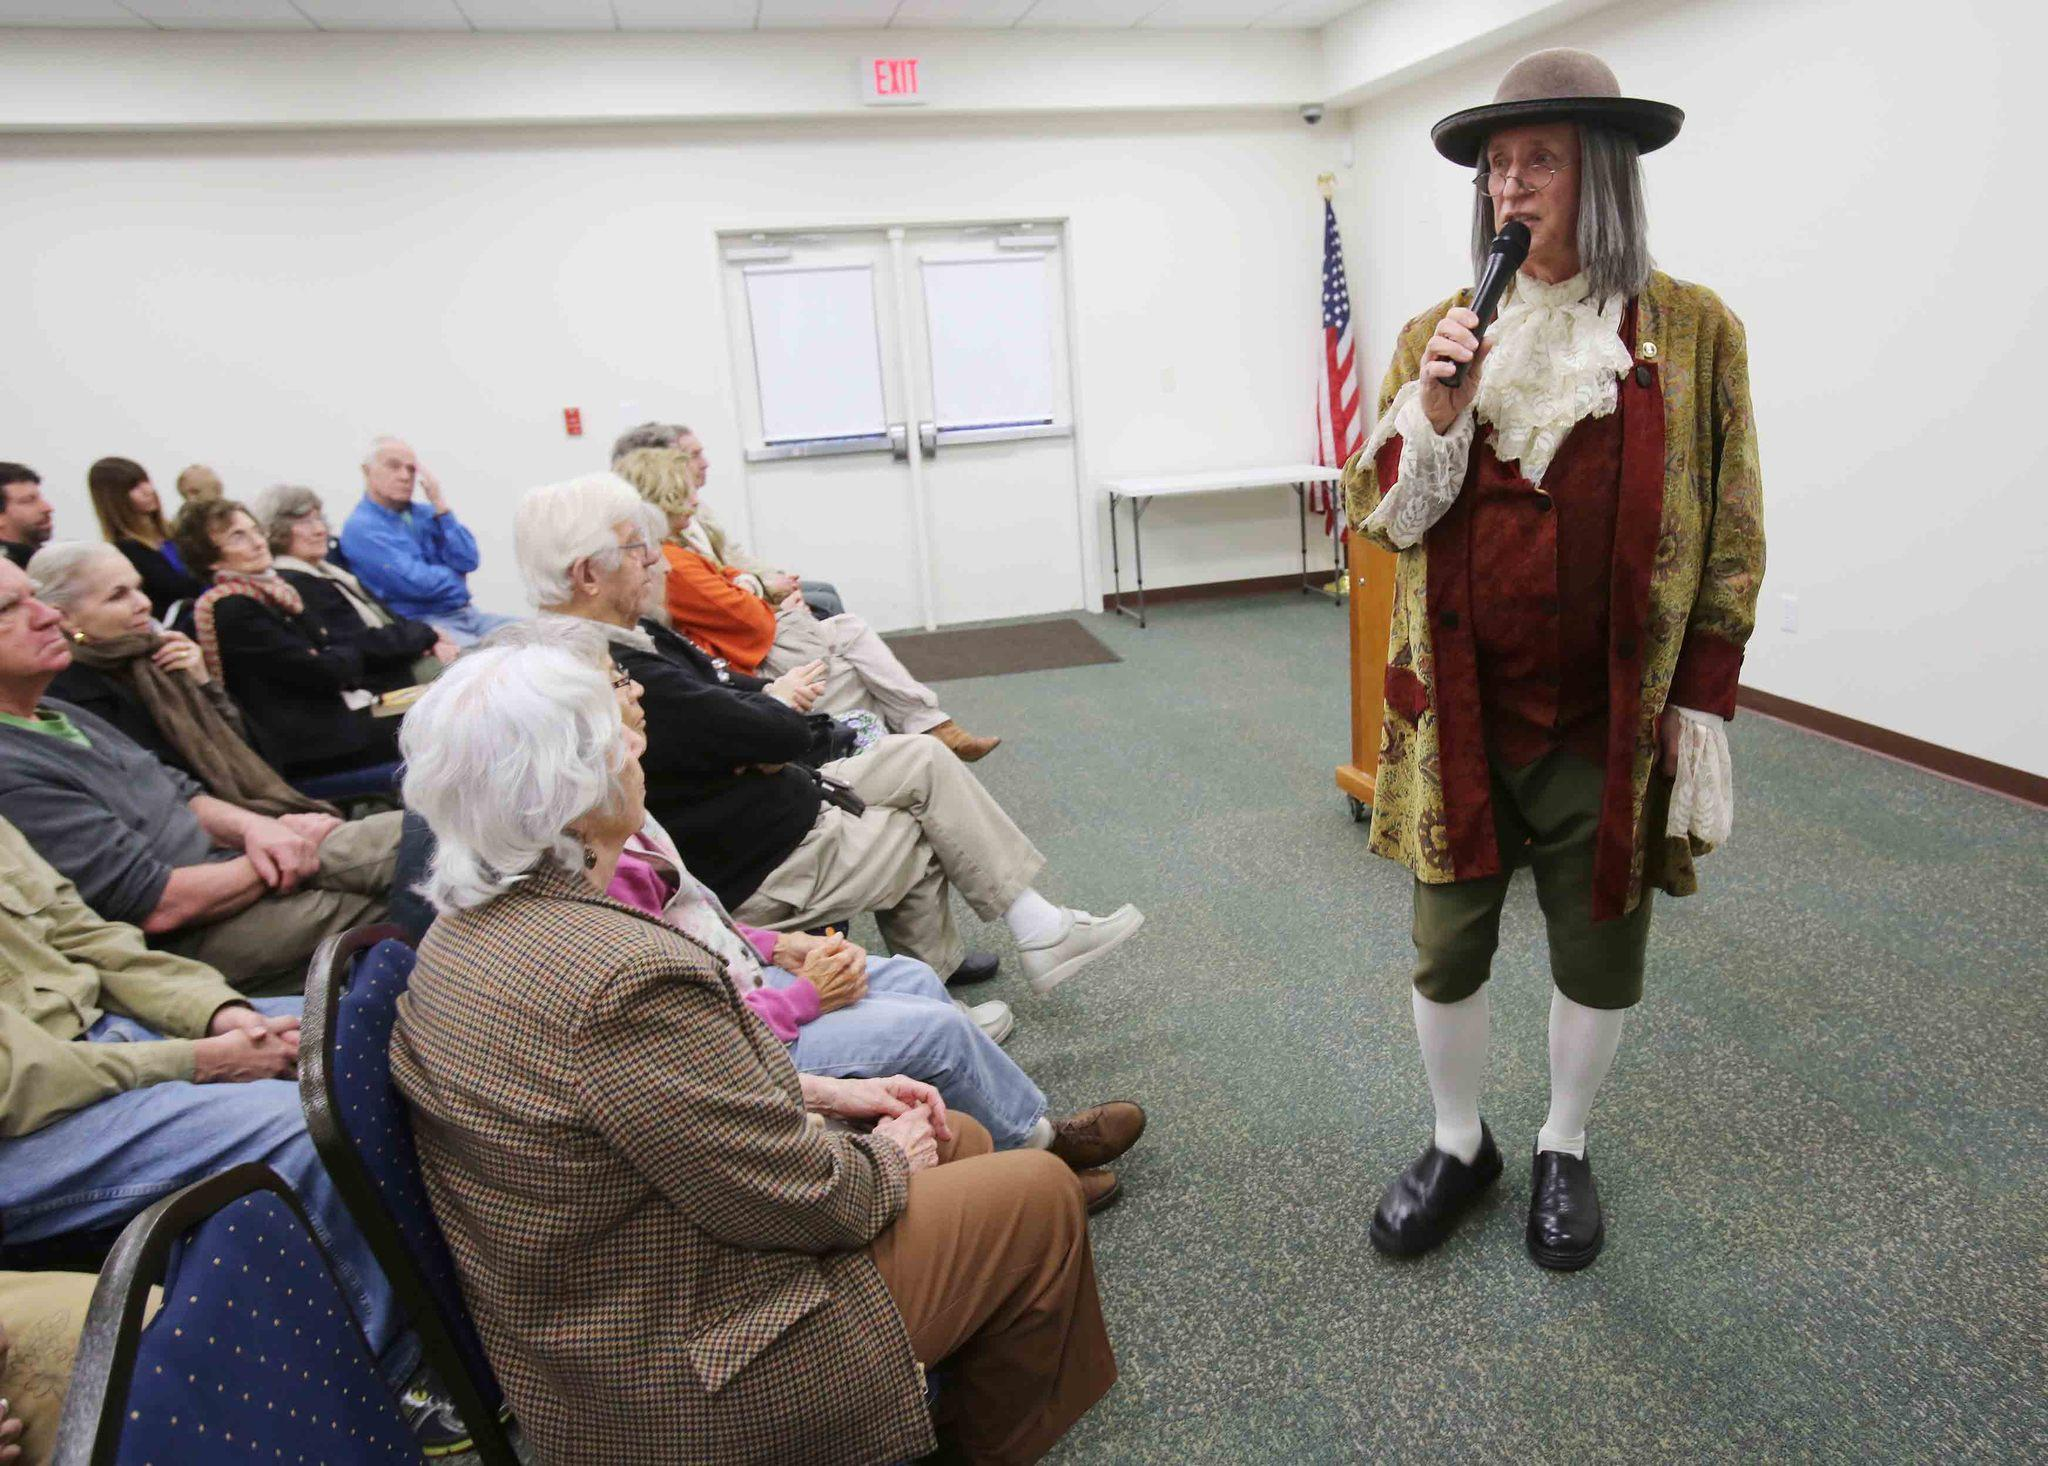 Rich Davis portrays Ben Franklin during a performance at the W.T. Bland Public Library in Mount Dora on Friday, January 29, 20145.